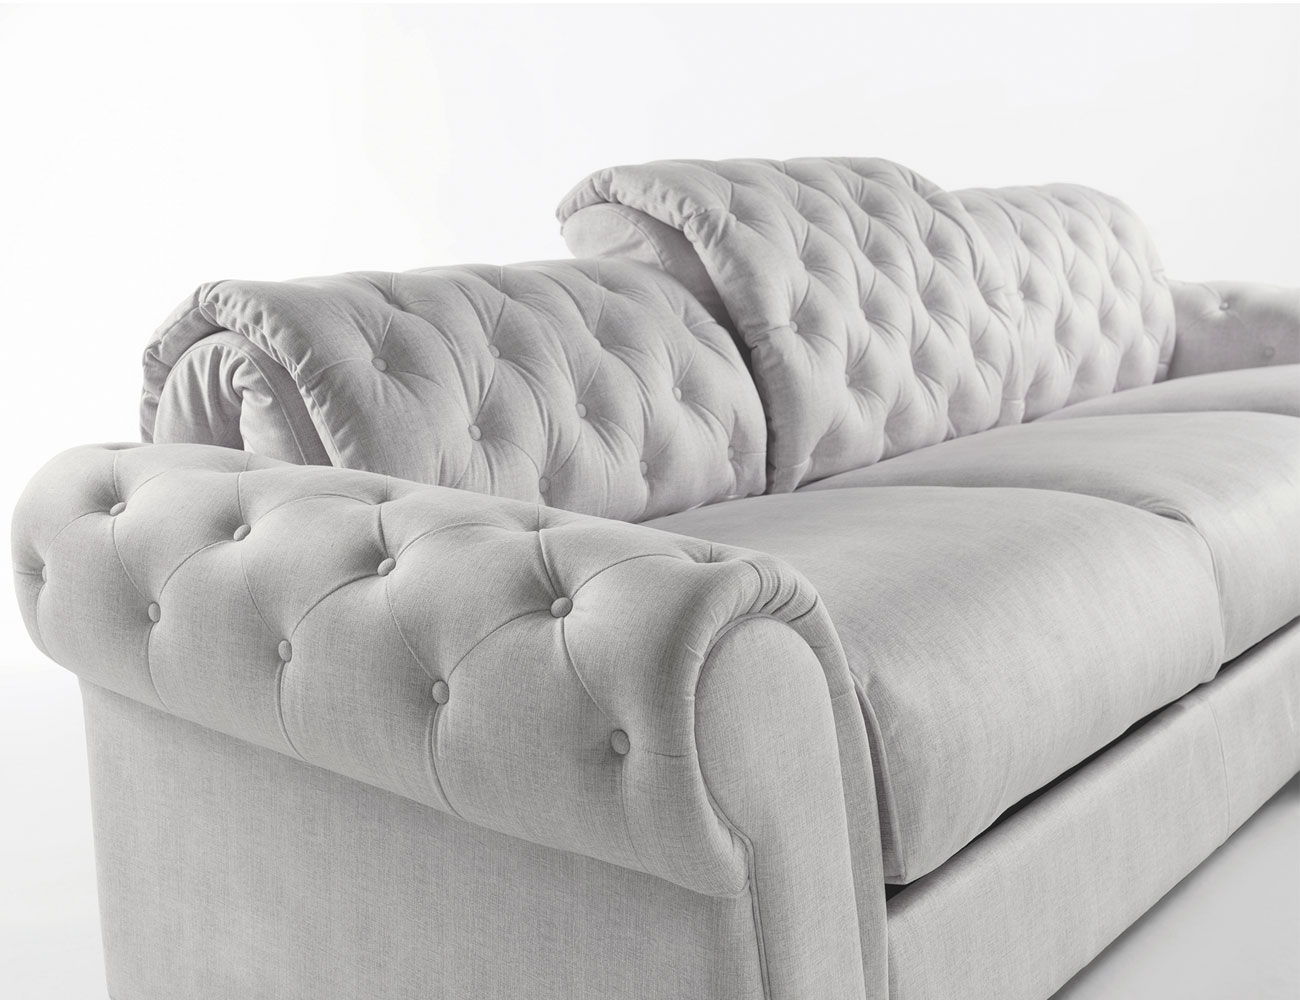 Sofa chaiselongue gran lujo decorativo capitone blanco tela 116